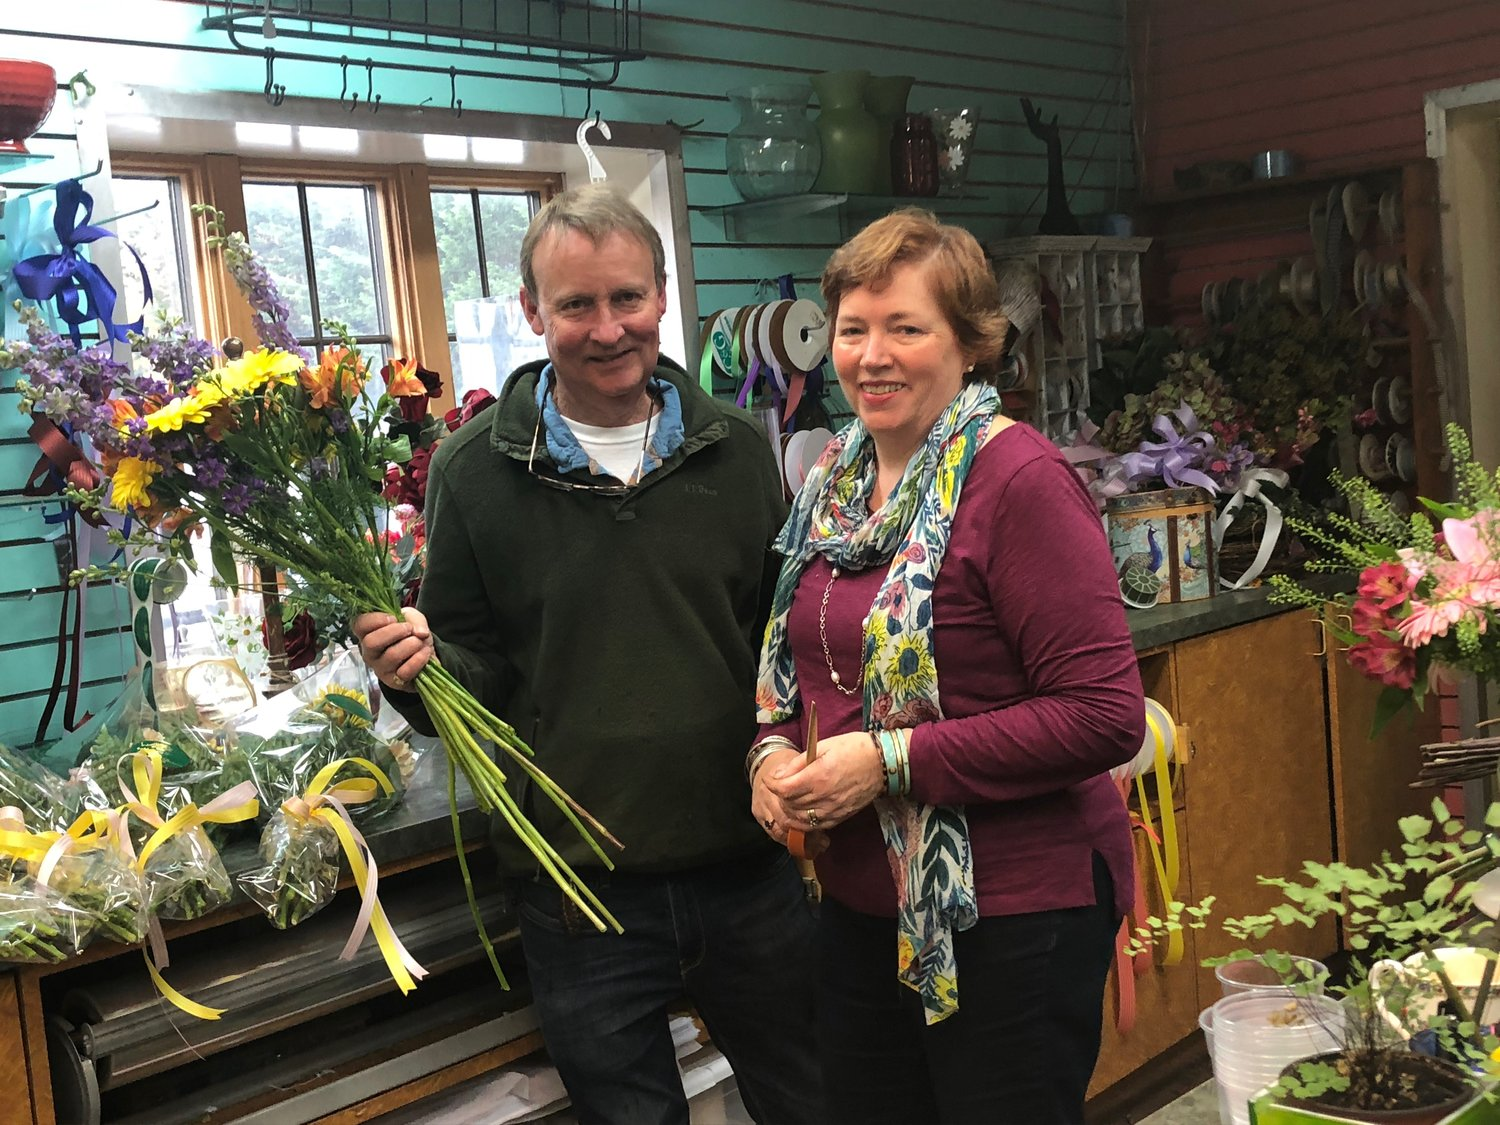 George and Cindy Mudford, the owners of English Country Garden Flowers will be closing shop in January.